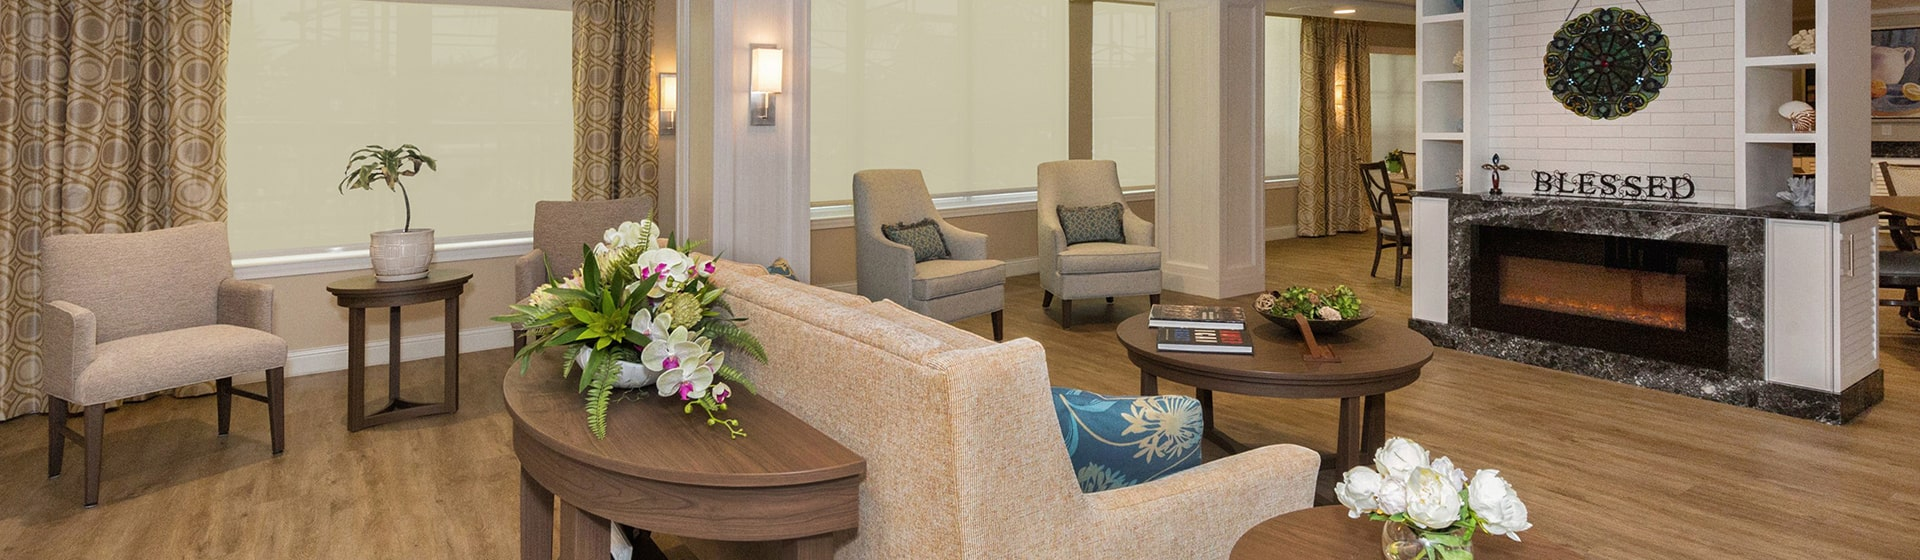 Caspersen Loft offers specialized memory care and support with the Right Touch.